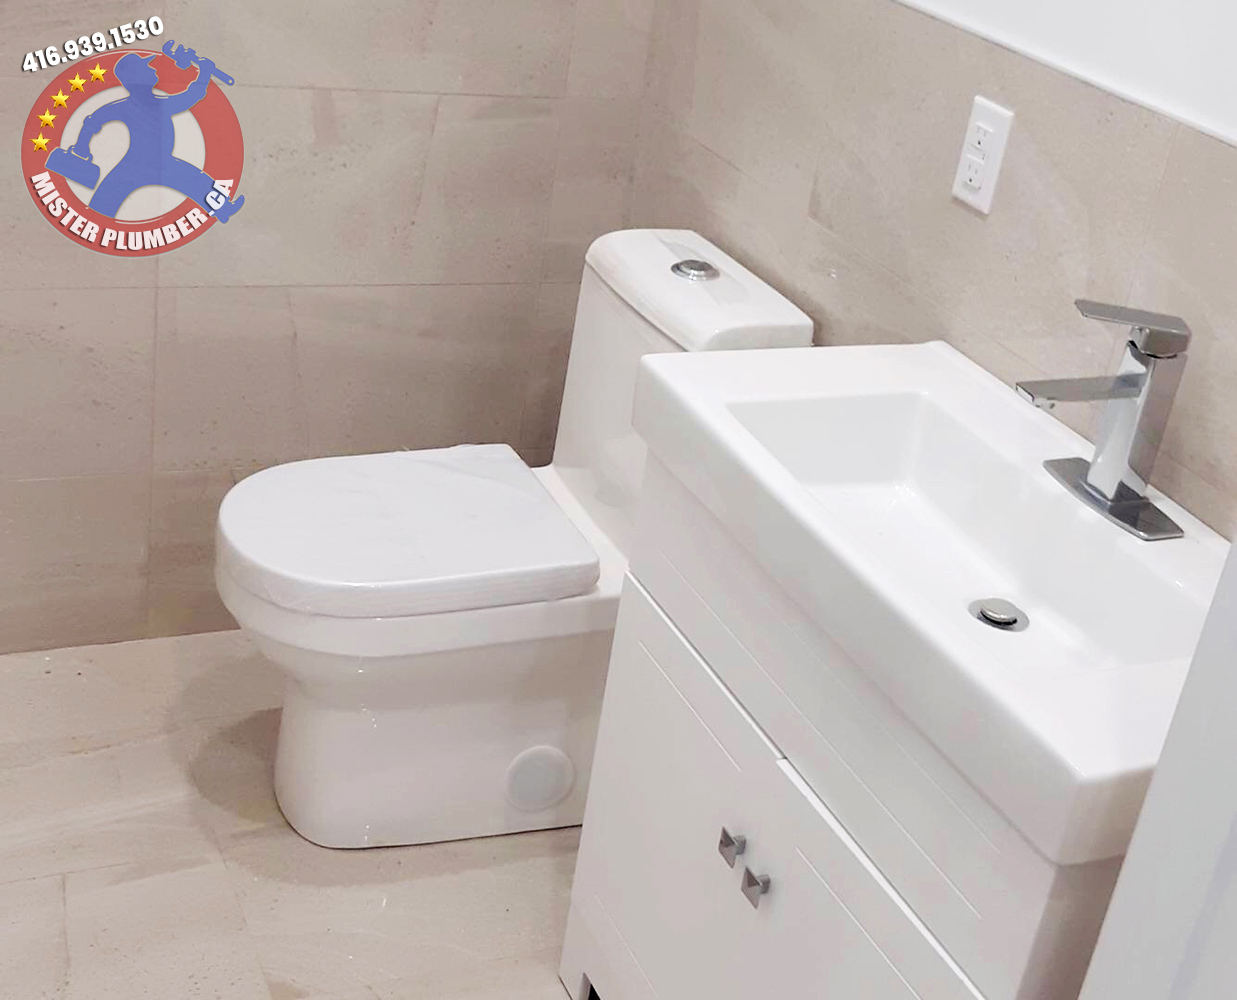 New modern toilet and vanity installed by Mister Plumber